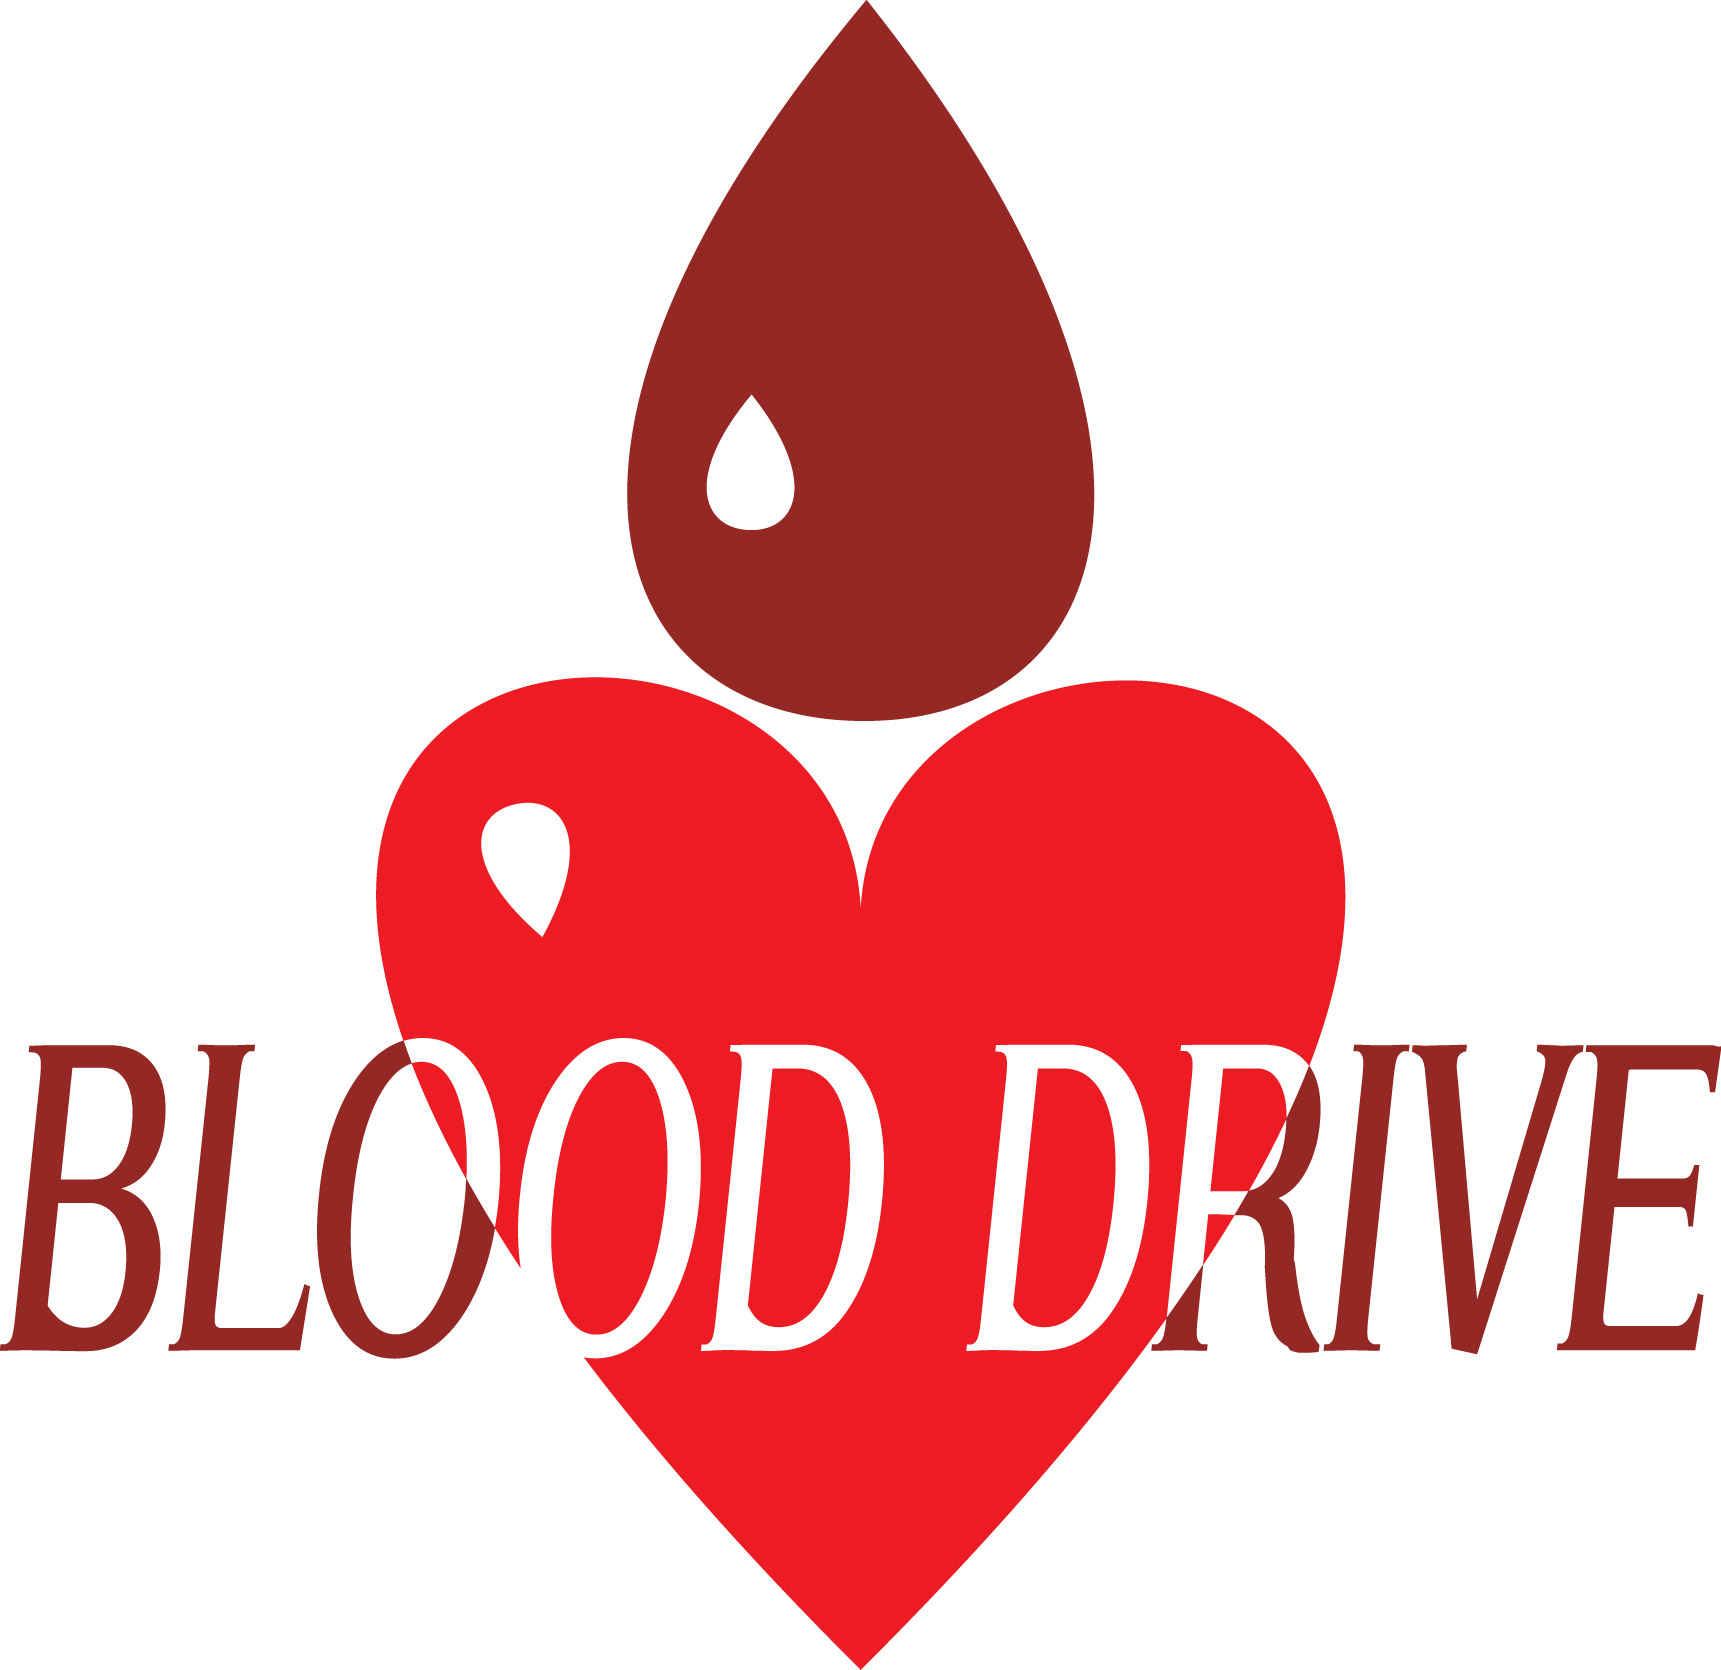 36 Blood Drive Images   Free Cliparts That You Can Download To You